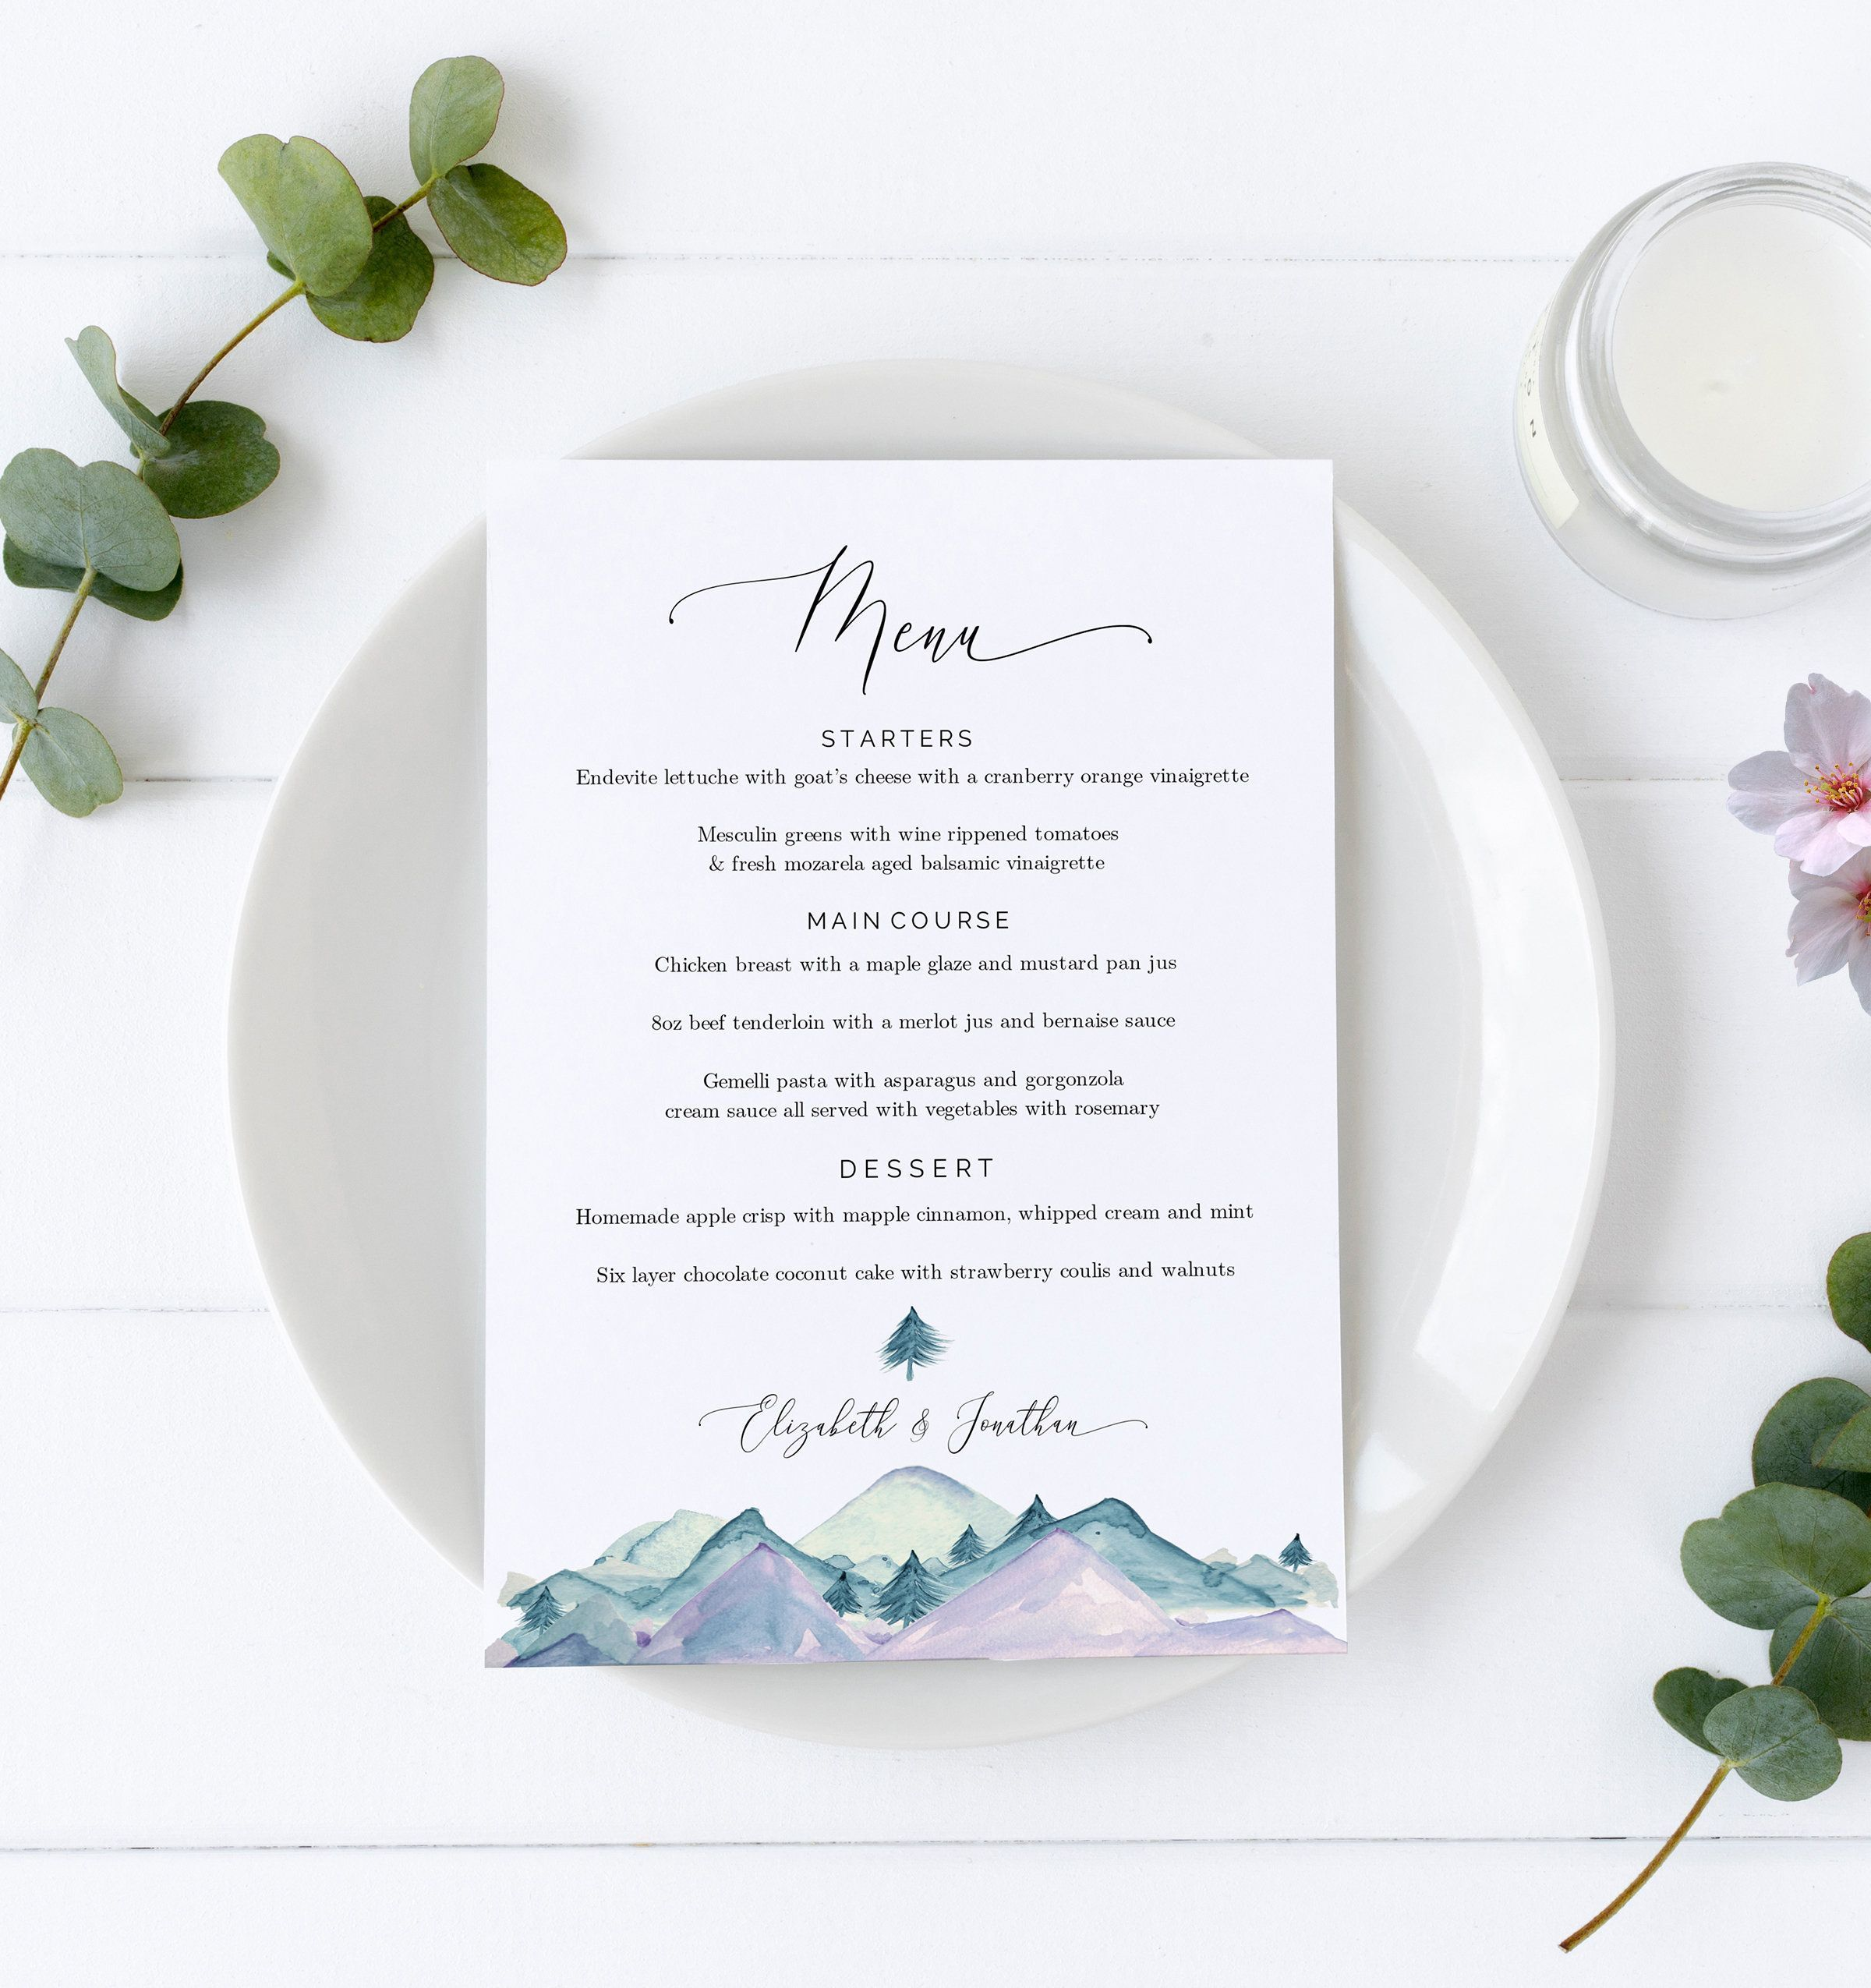 Diy Wedding Menu Template Printable Wedding Menu Cards Menu Card Printable Dinner Menu Download In 2020 Diy Wedding Menu Menu Card Template Printable Menu Template